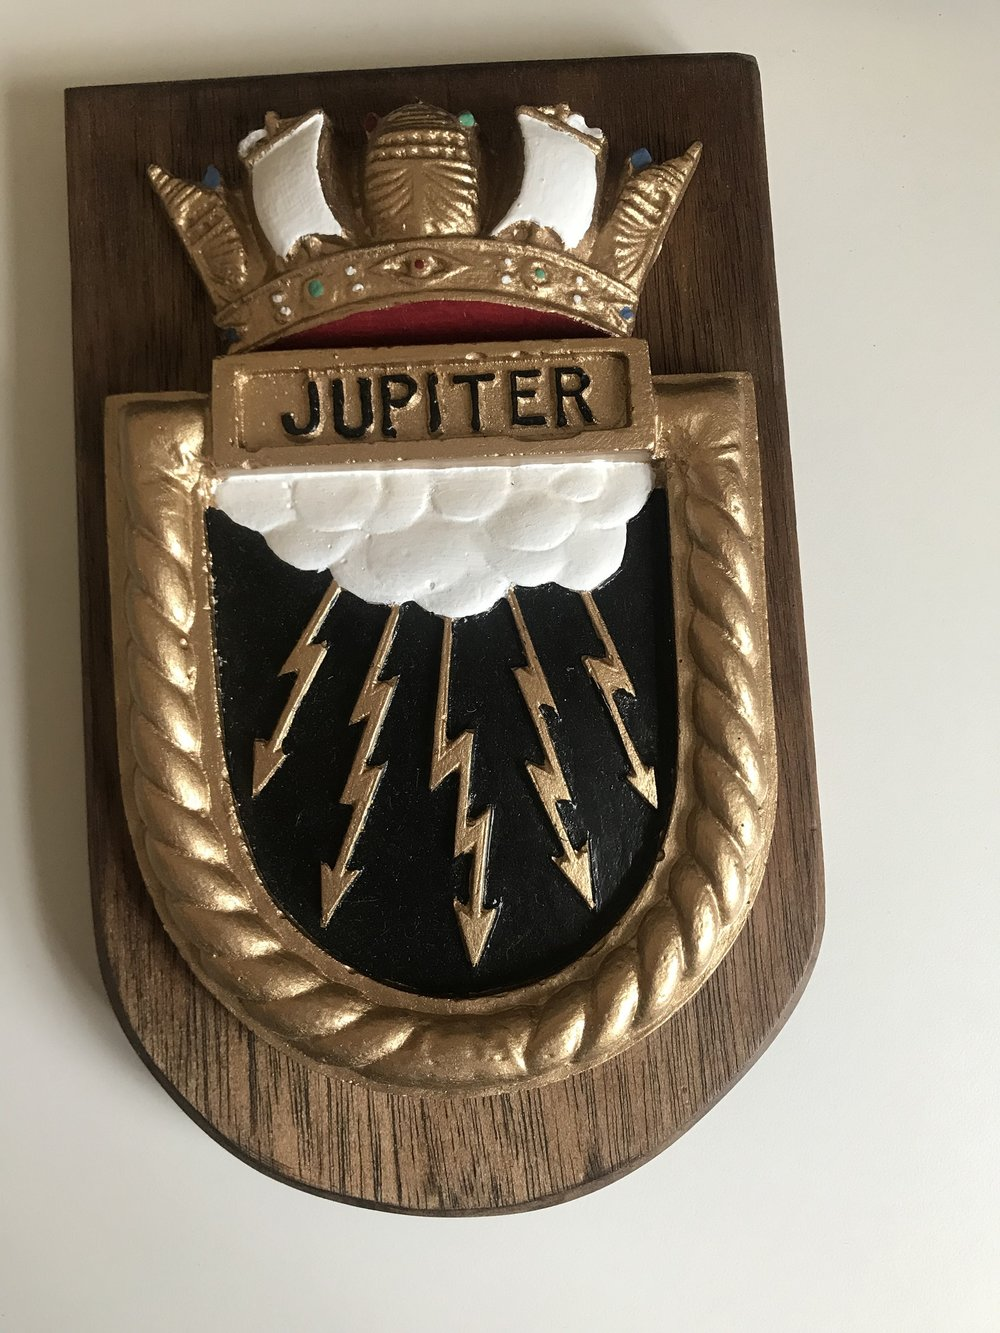 jupiter plaque.jpg